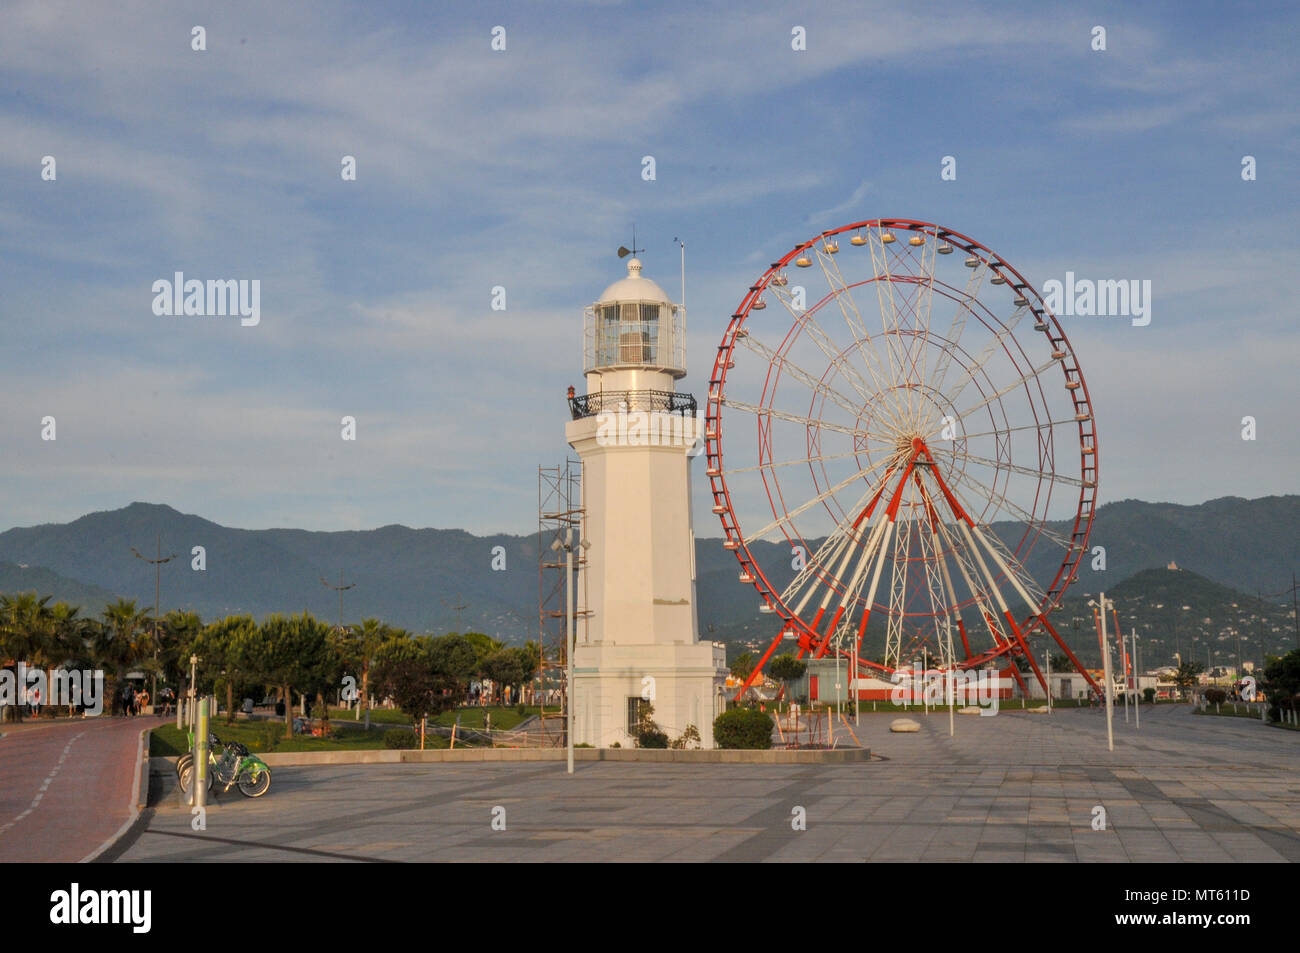 Ferris wheel in the Park of Miracles on the embankment. Batumi, Georgia Stock Photo